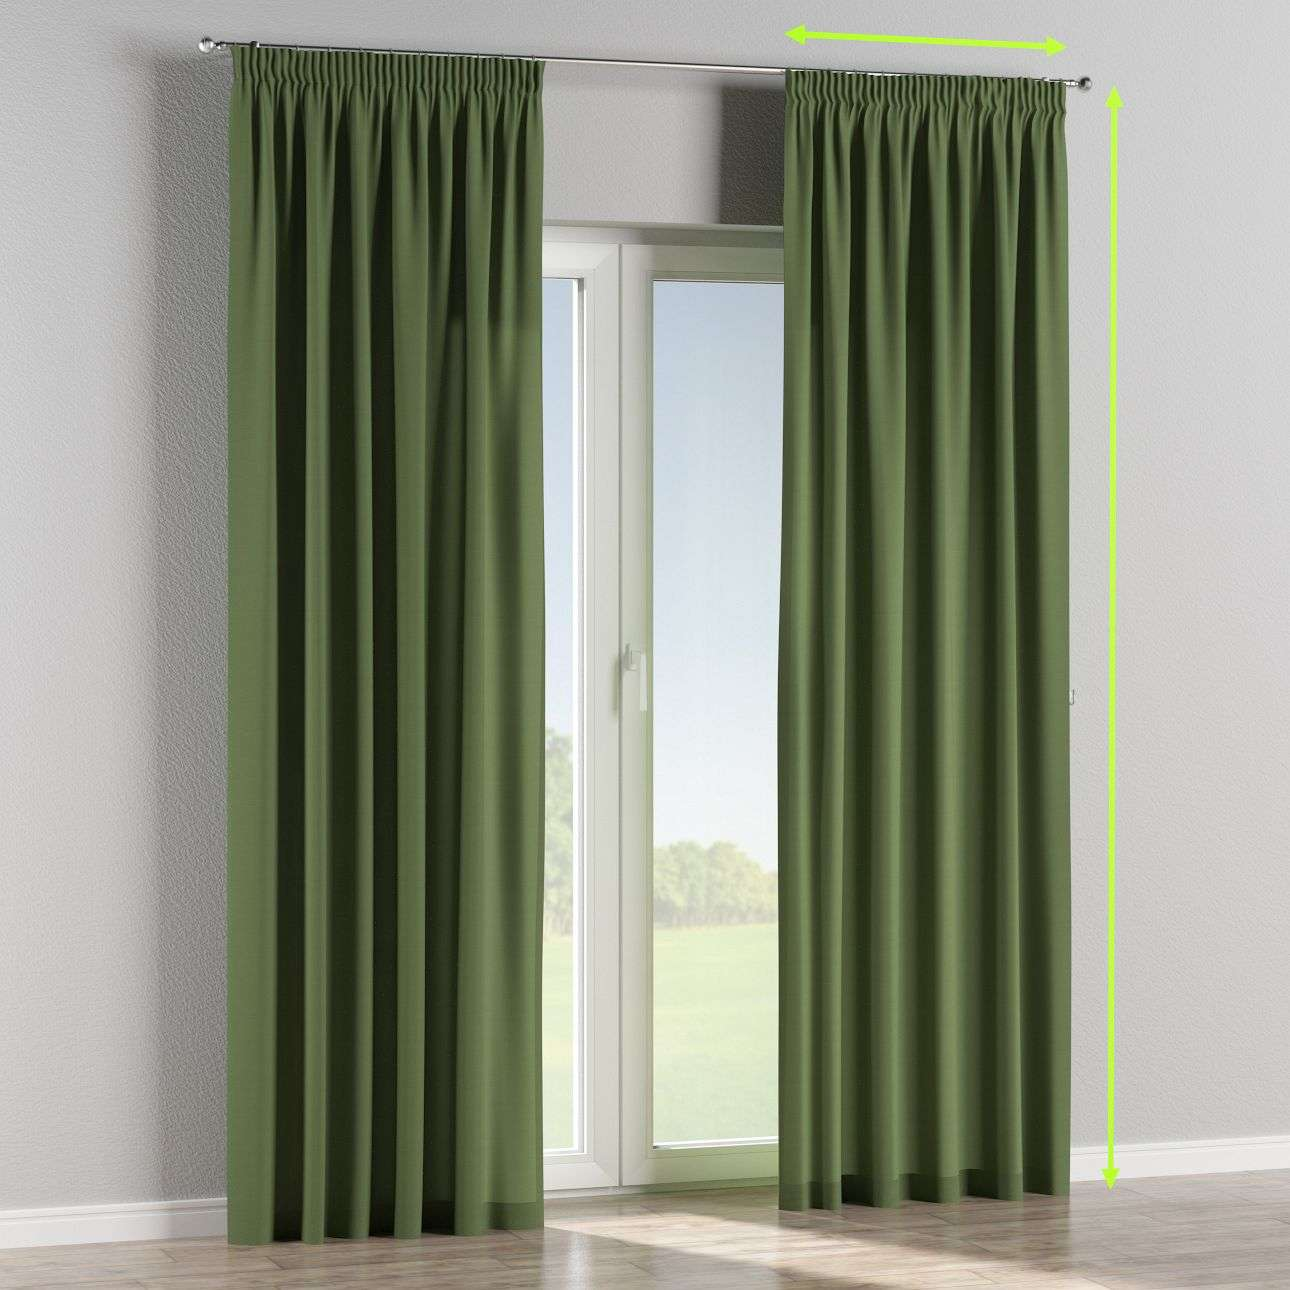 Pencil pleat curtains in collection Cotton Panama, fabric: 702-06